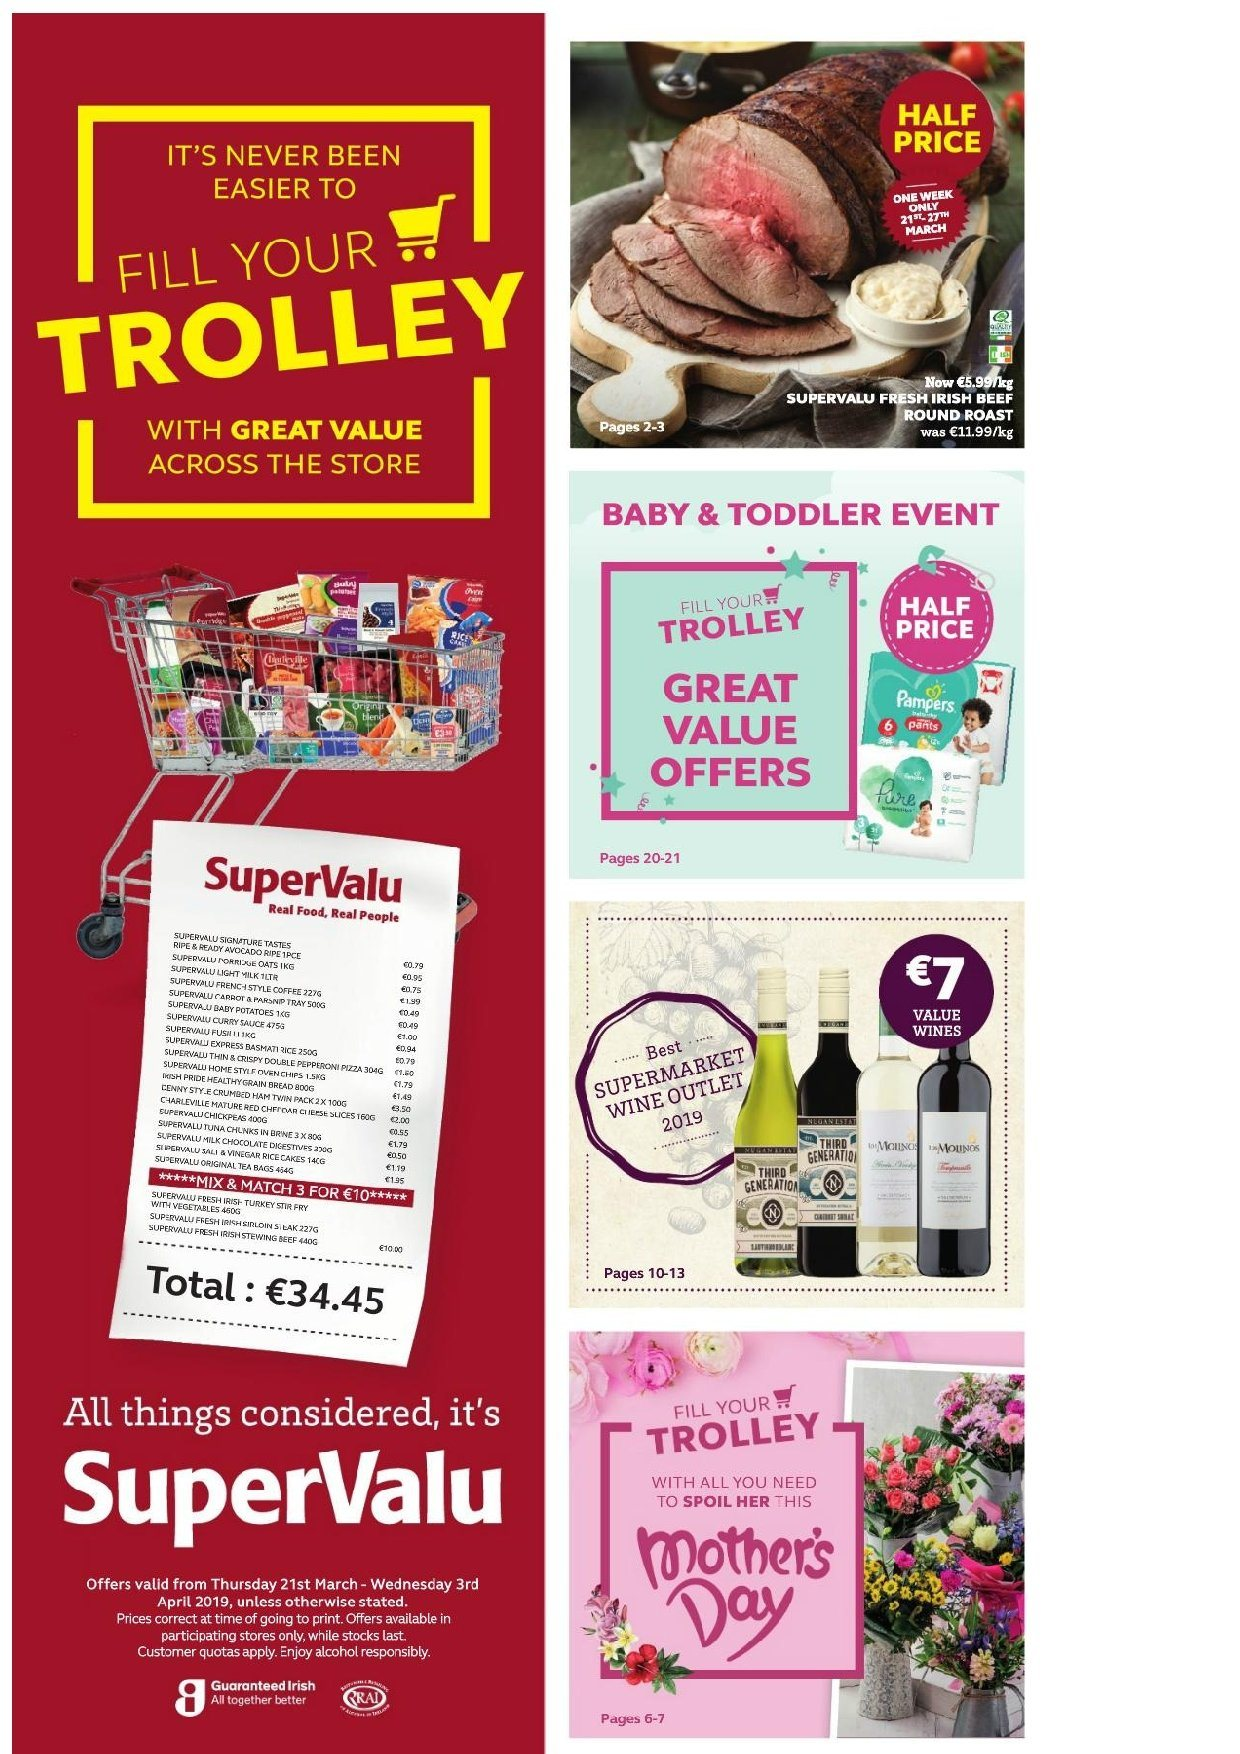 SuperValu offer  - 21.3.2019 - 3.4.2019 - Sales products - beef meat, trolley. Page 1.